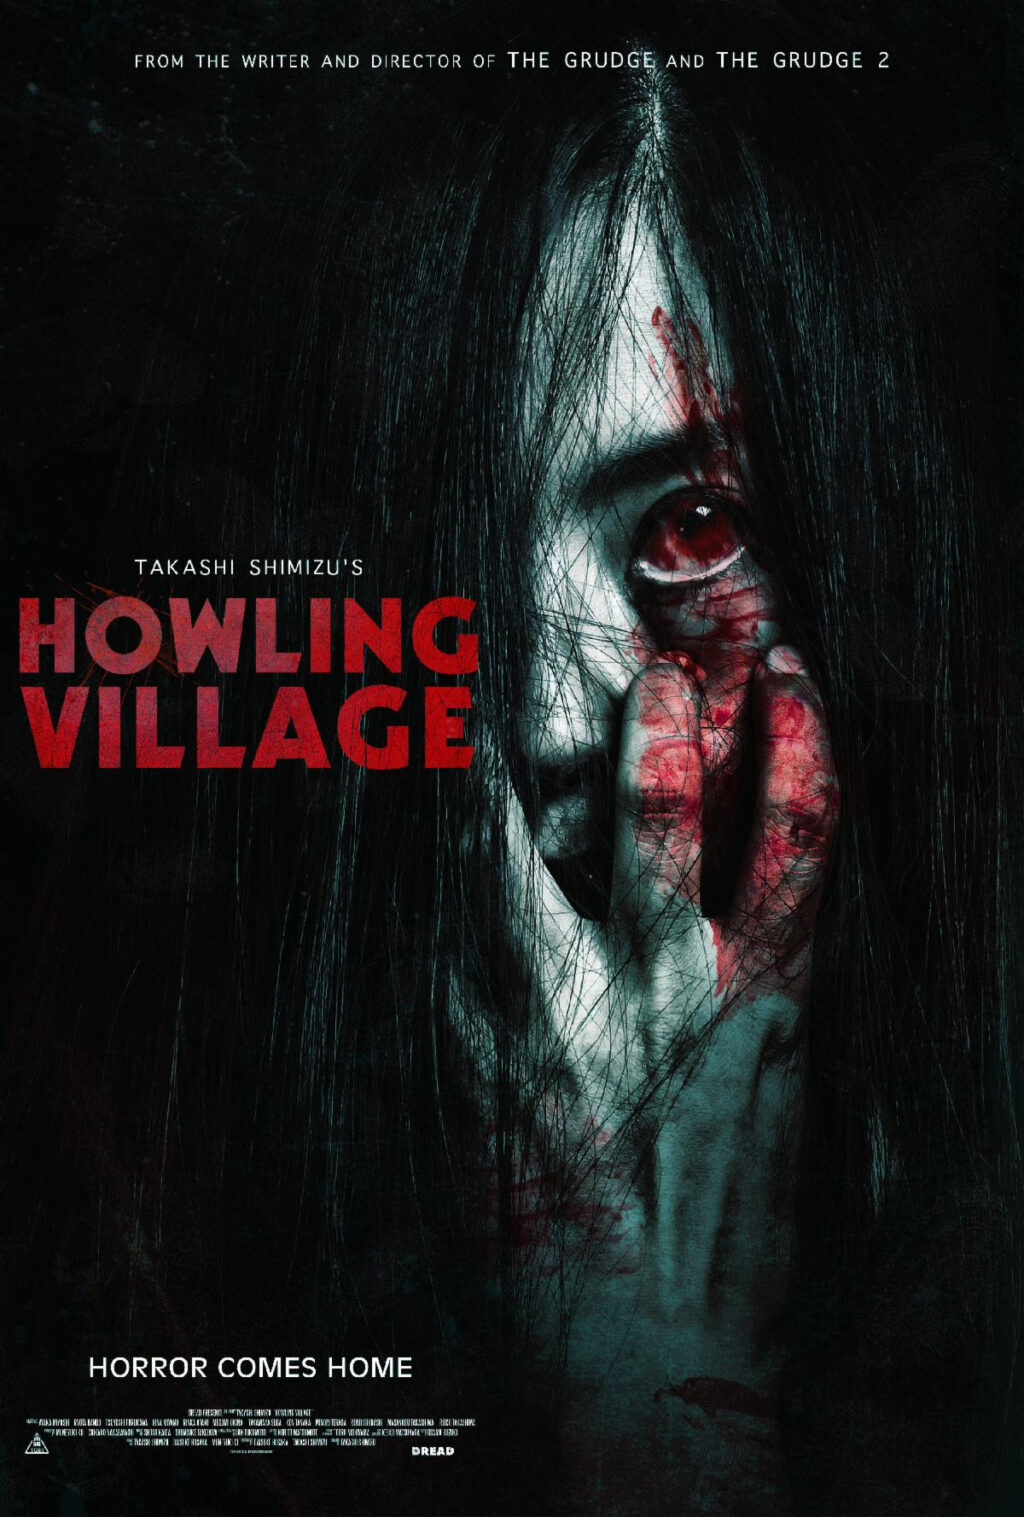 Howling Village poster 1 1024x1517 - Image Gallery: Takashi Shimizu's HOWLING VILLAGE Will Have Its US Premiere at Popcorn Frights!